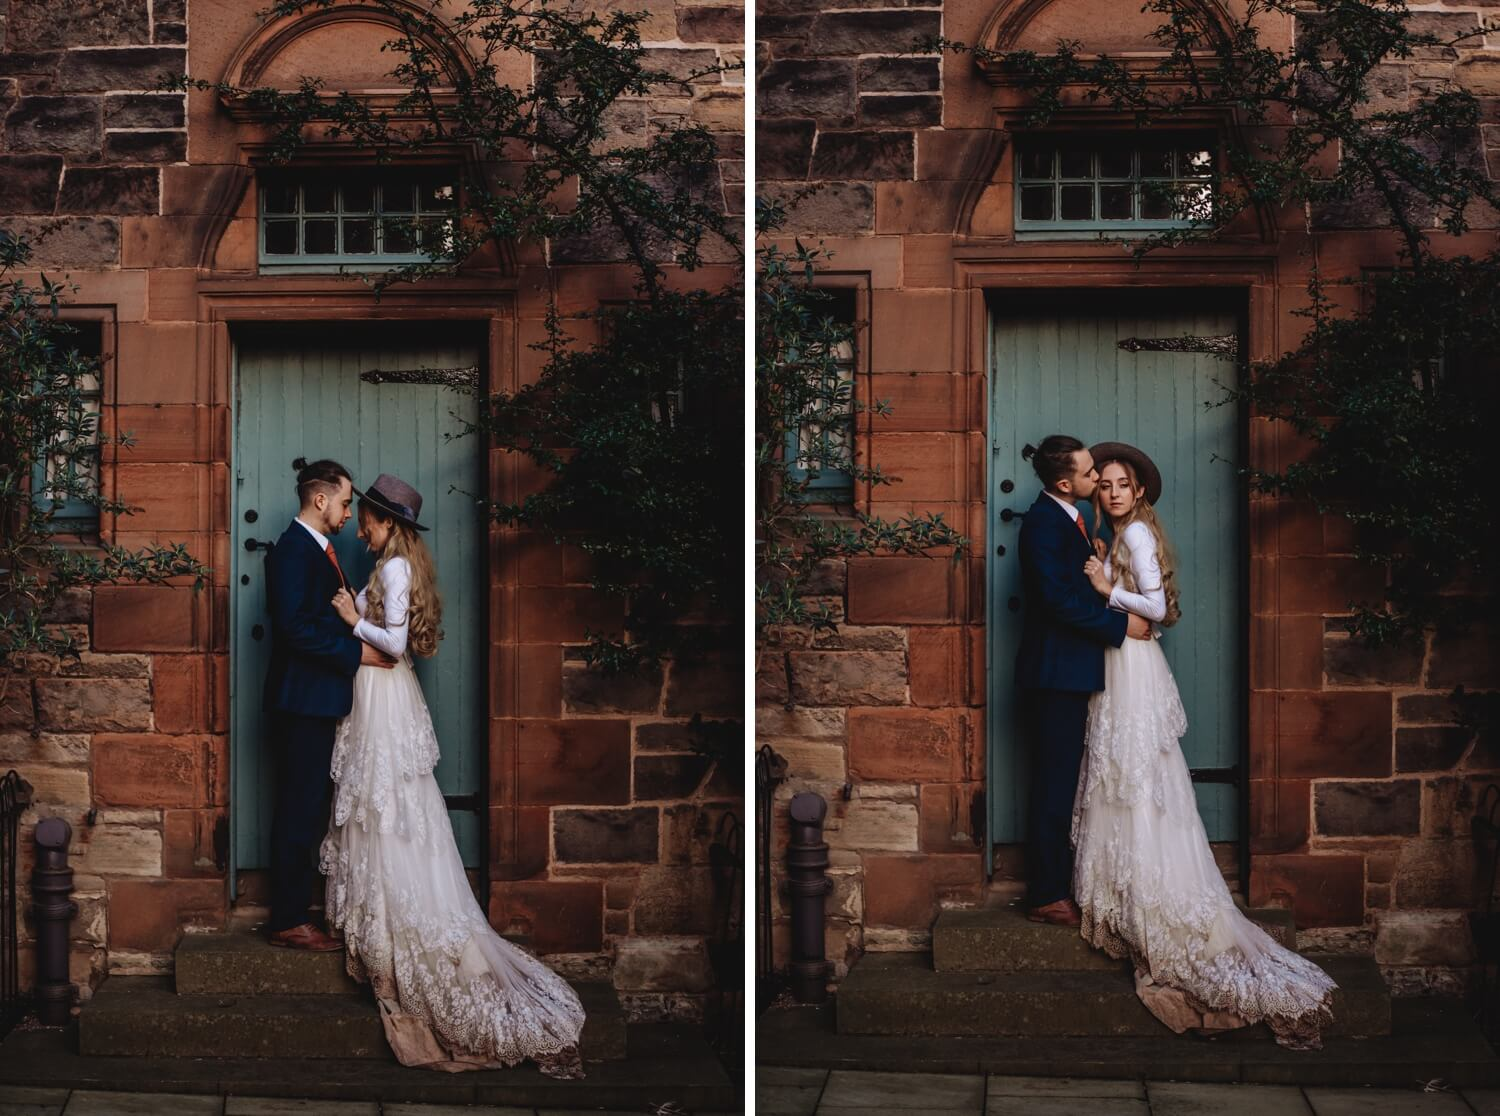 elopement, Bride and groom Wedding Photographer in Edinburgh - The Adamkovi